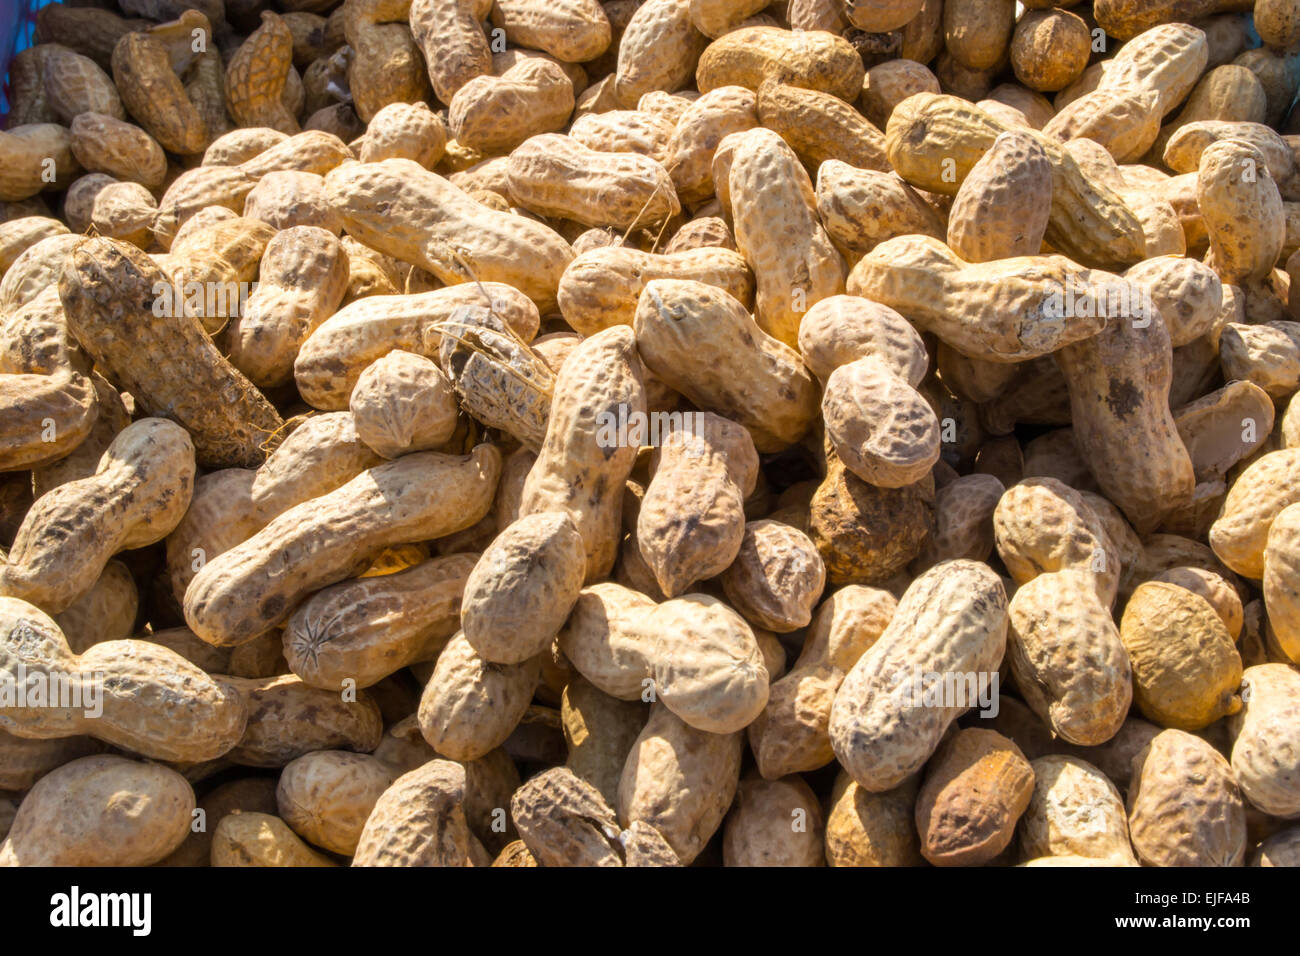 Monkey nuts for sale - crack the fragile brittle shells to get to the peanut - Stock Image